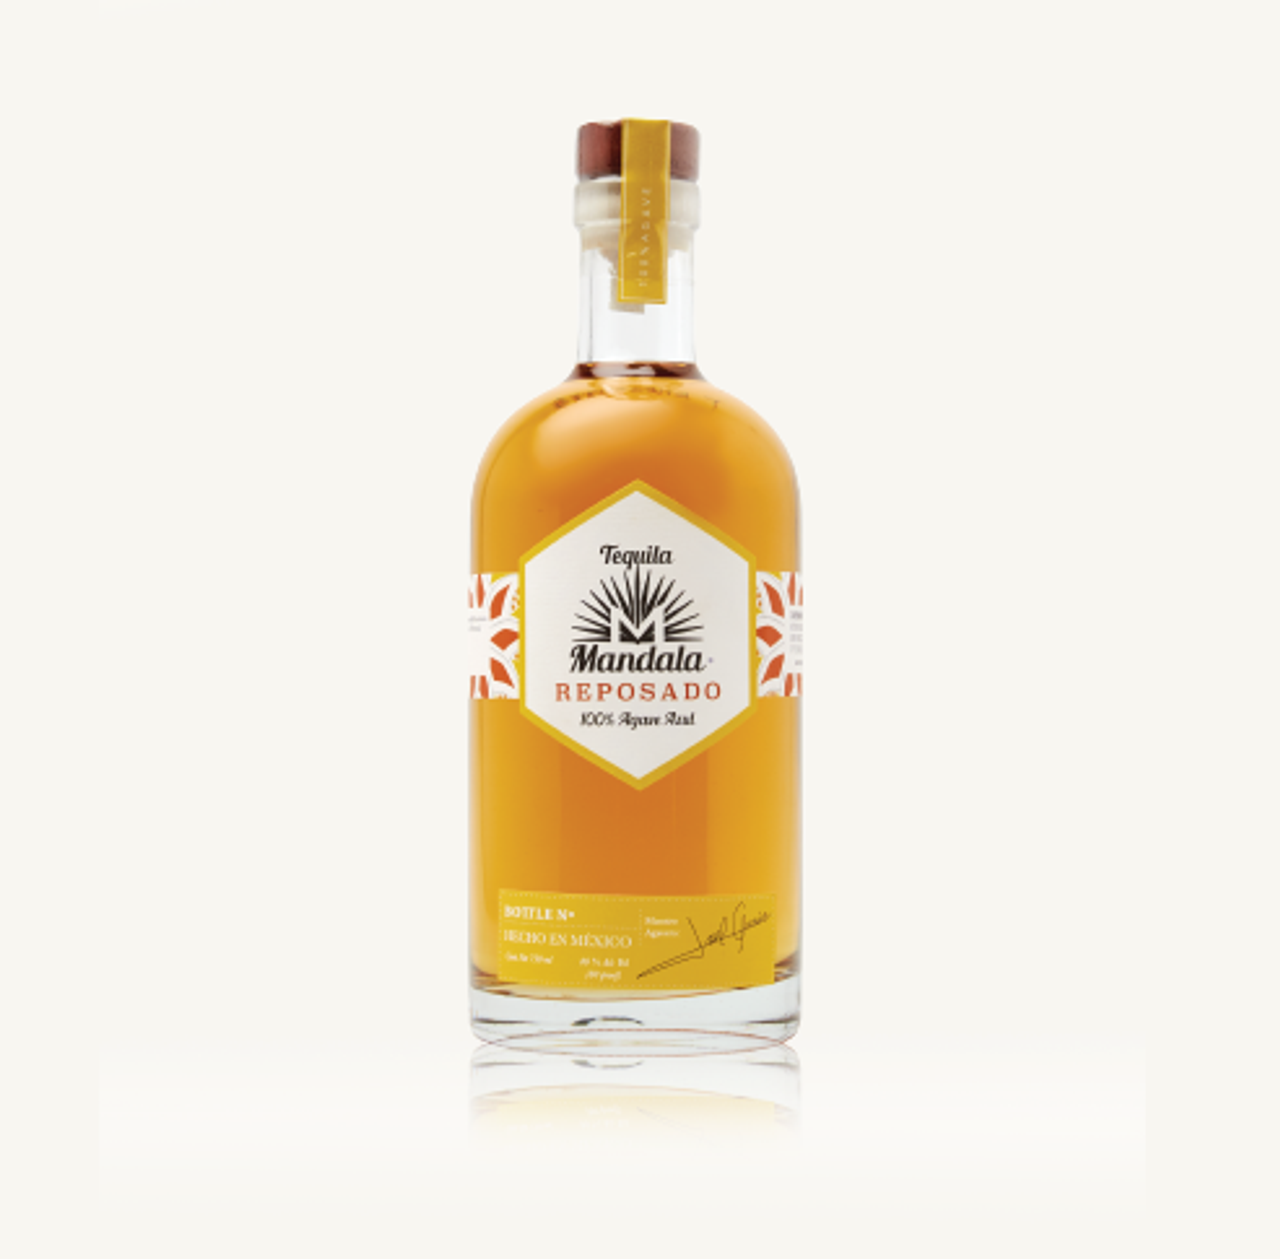 Made with the selection of the best agaves in its optimum point of maturity, passing through the clay oven and then aged in French white oak barrels.